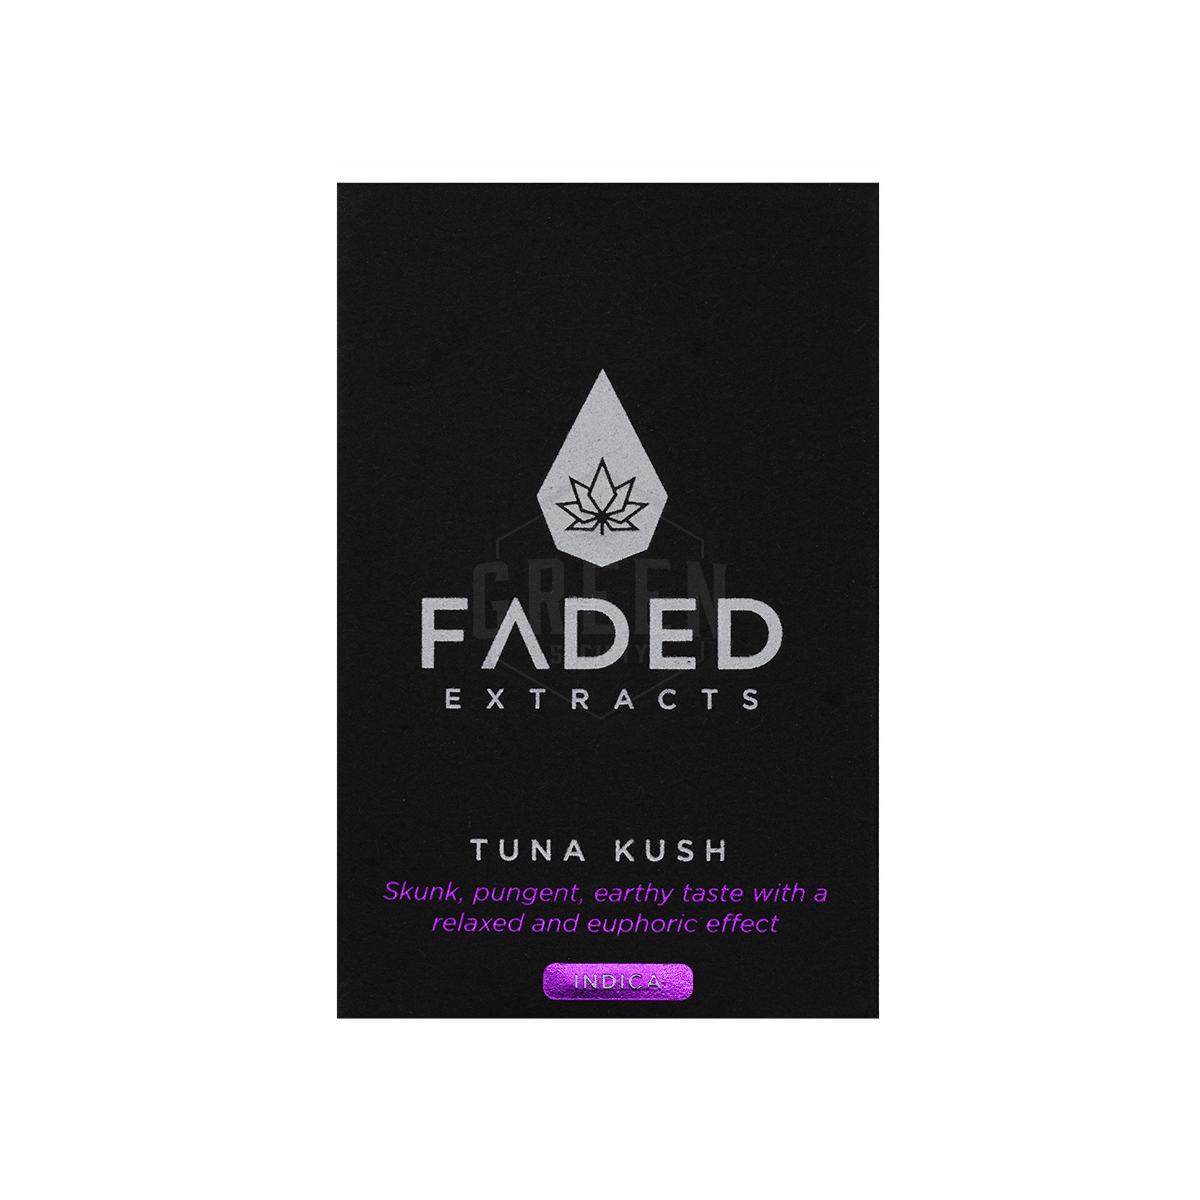 Tuna Kush Shatter by Faded Extracts by Green Society - Image © 2018 Green Society. All Rights Reserved.